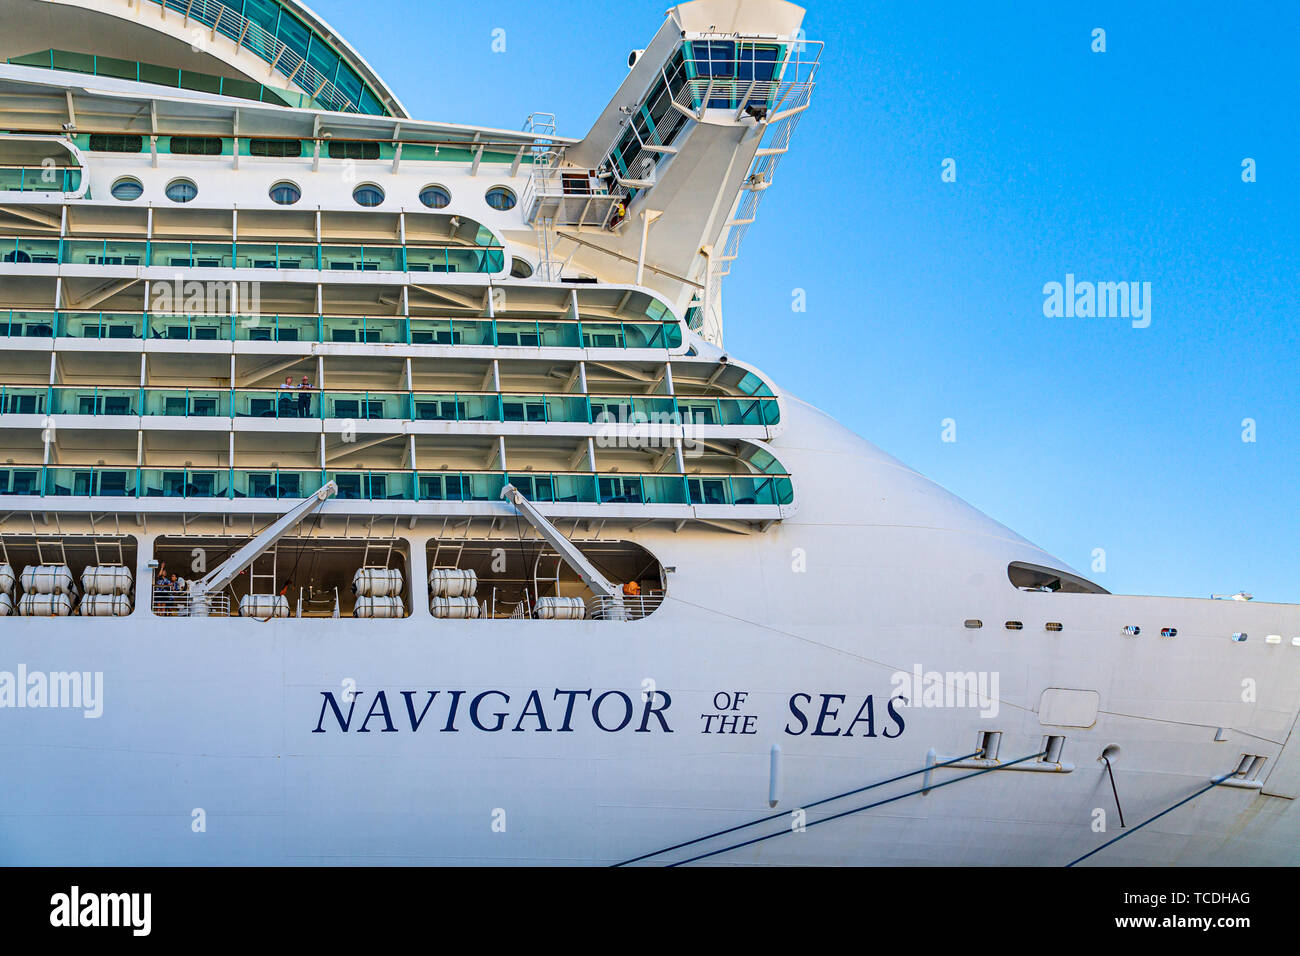 Bow of Navigator of the Seas - Stock Image